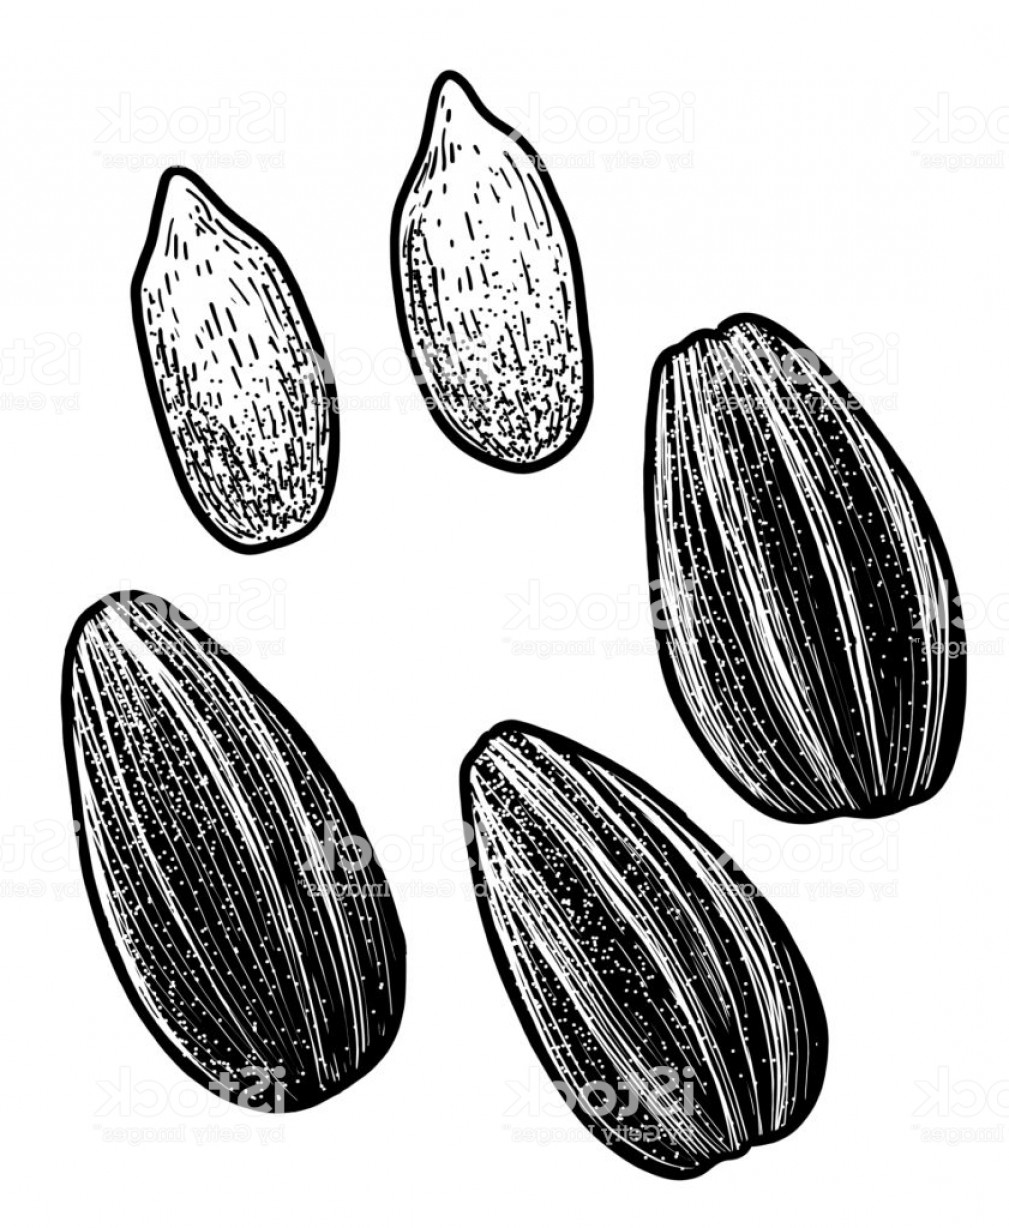 Vector Black And White Sunflower Seed: Sunflower Seed Illustration Drawing Engraving Ink Line Art Vector Gm